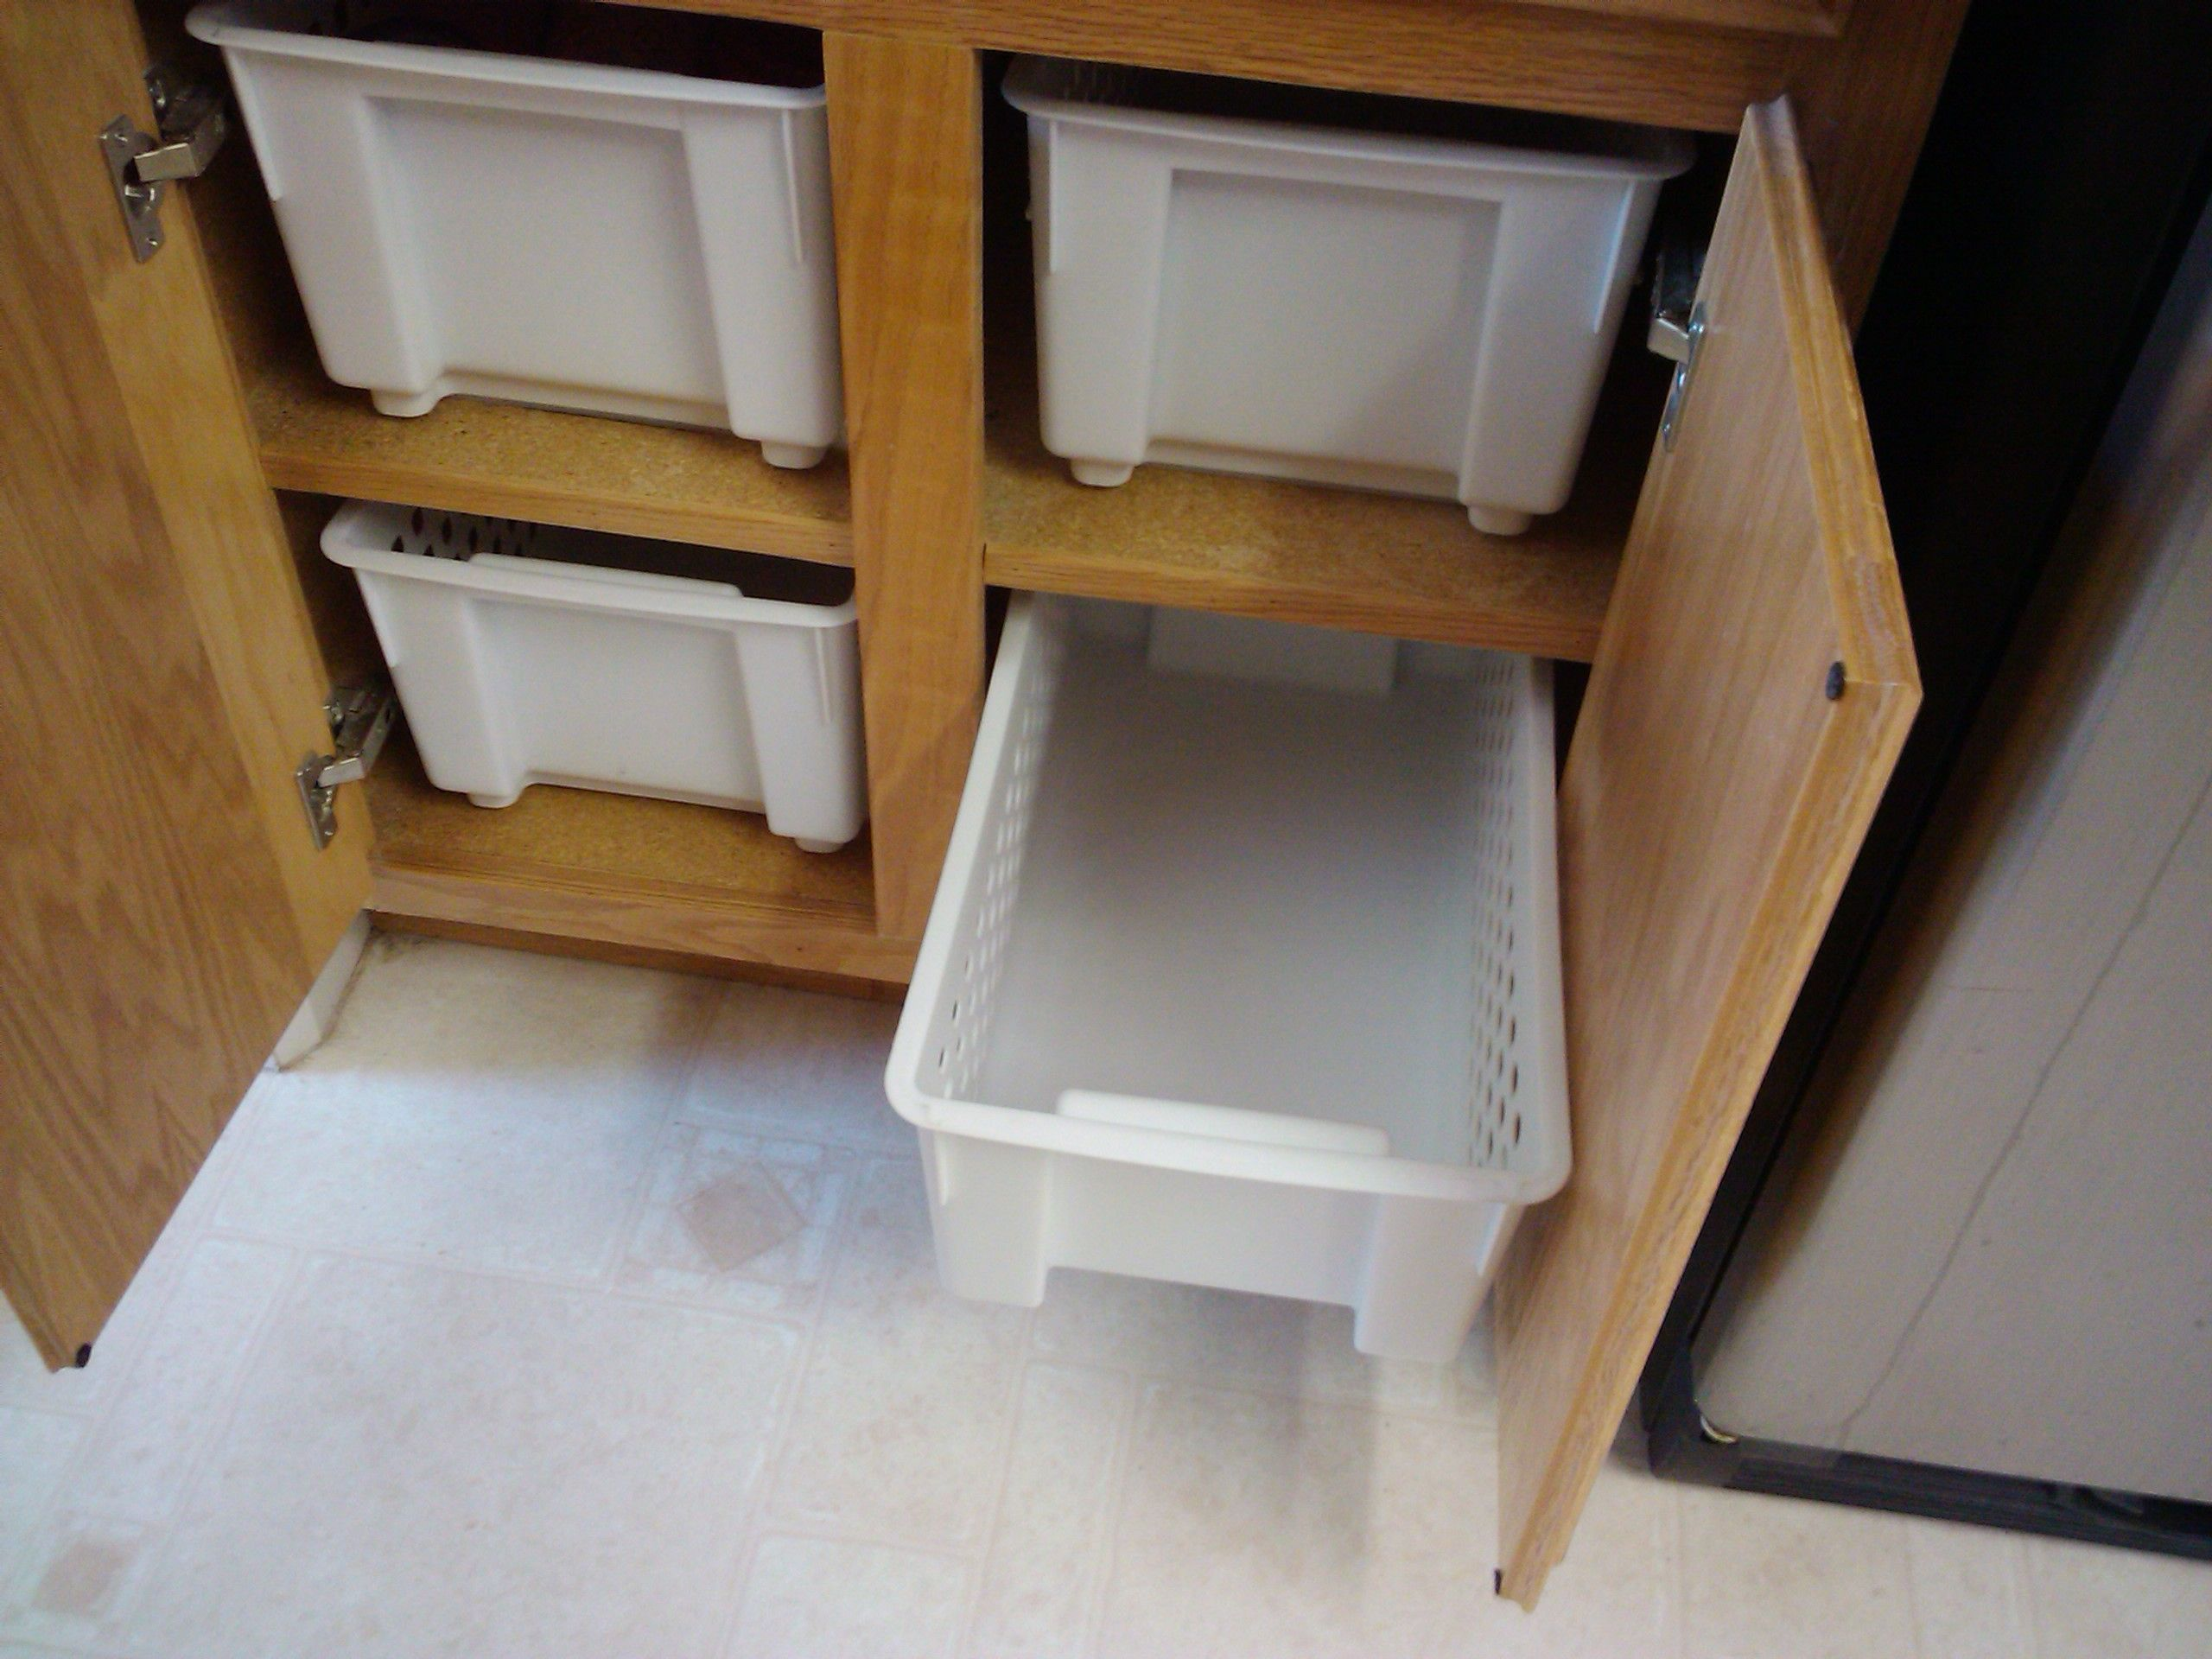 Kitchen Cabinet Inexpensive Solution No More Reaching To The Backs Of My 24 Deep Cabinets